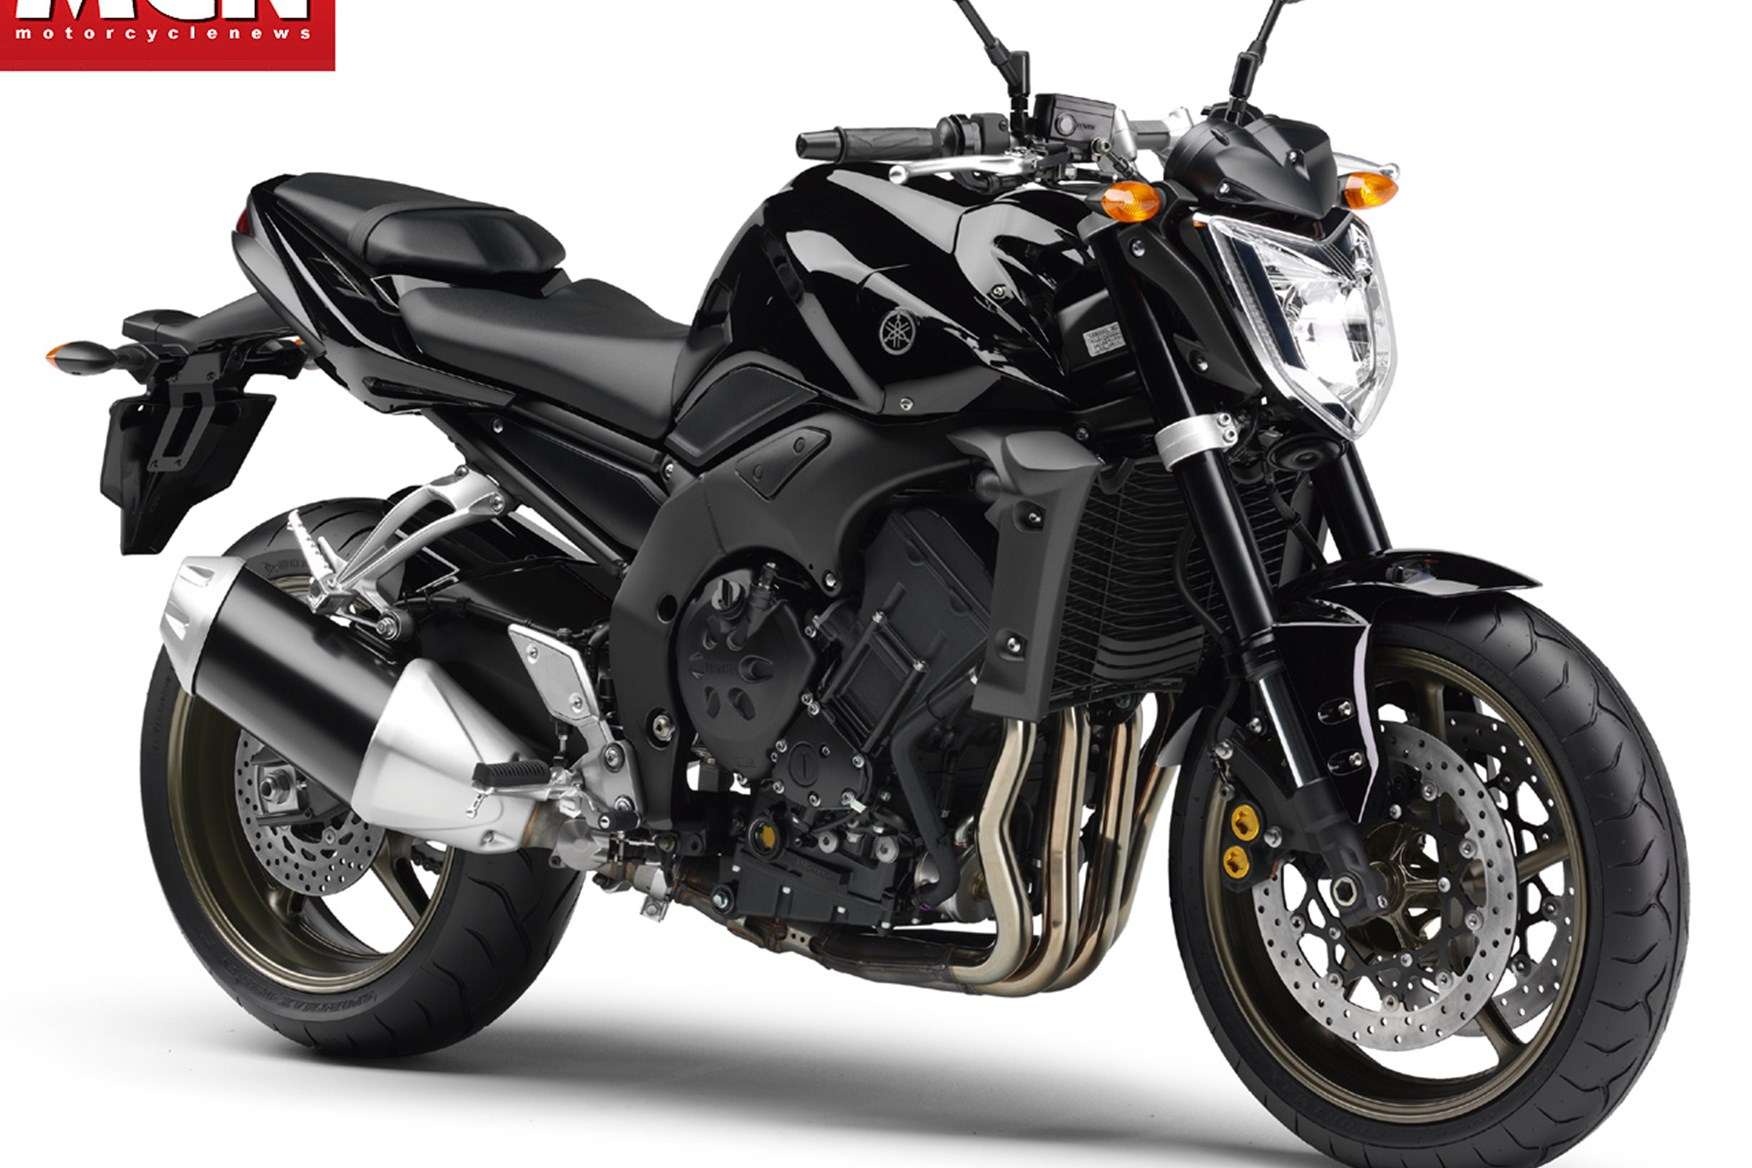 Yamaha Fz 1s Abs Pics Specs And Information